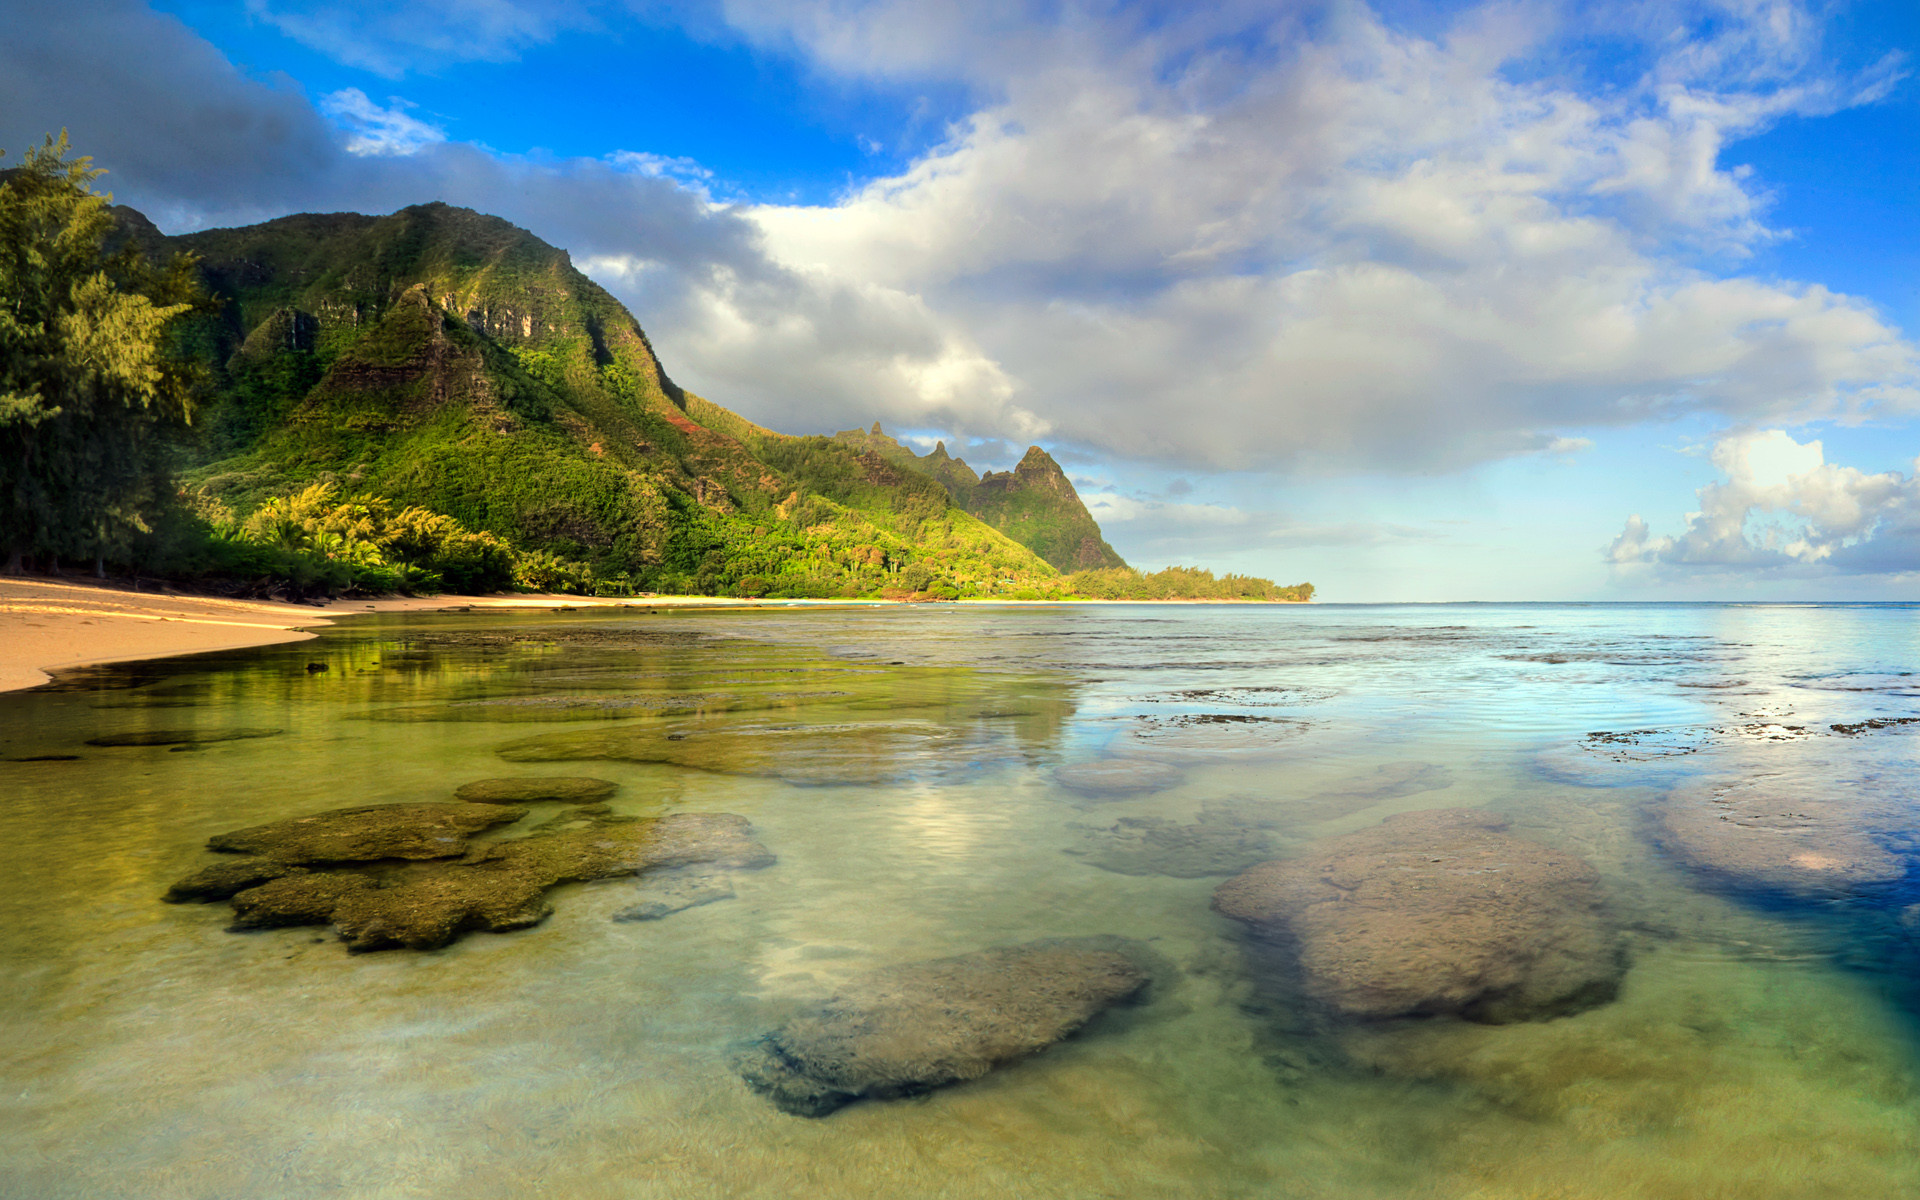 1920x1200 Tunnels Beach seascape with coral reef underwater, Kaua?i